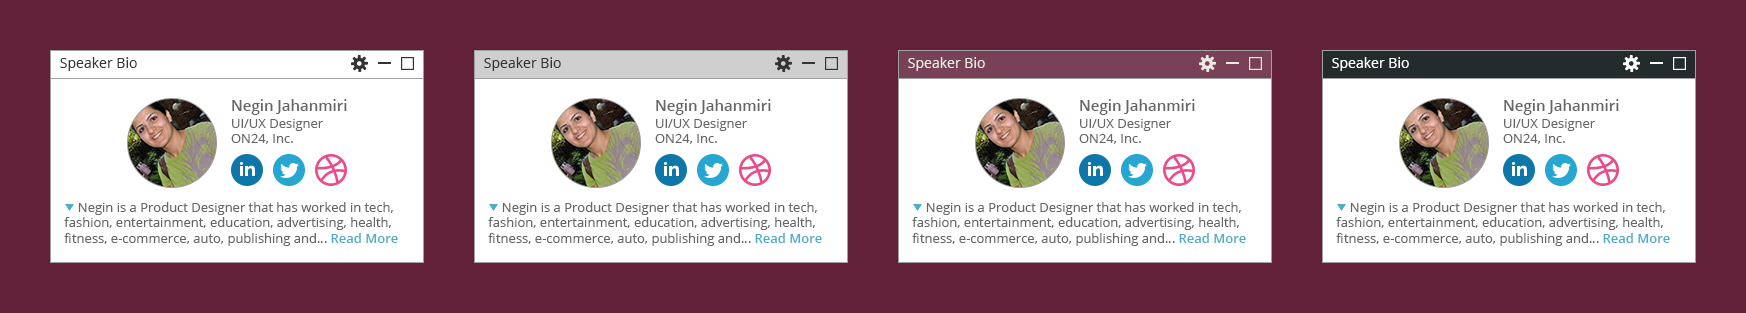 ON24 Platform 10 Speaker Bio Widget